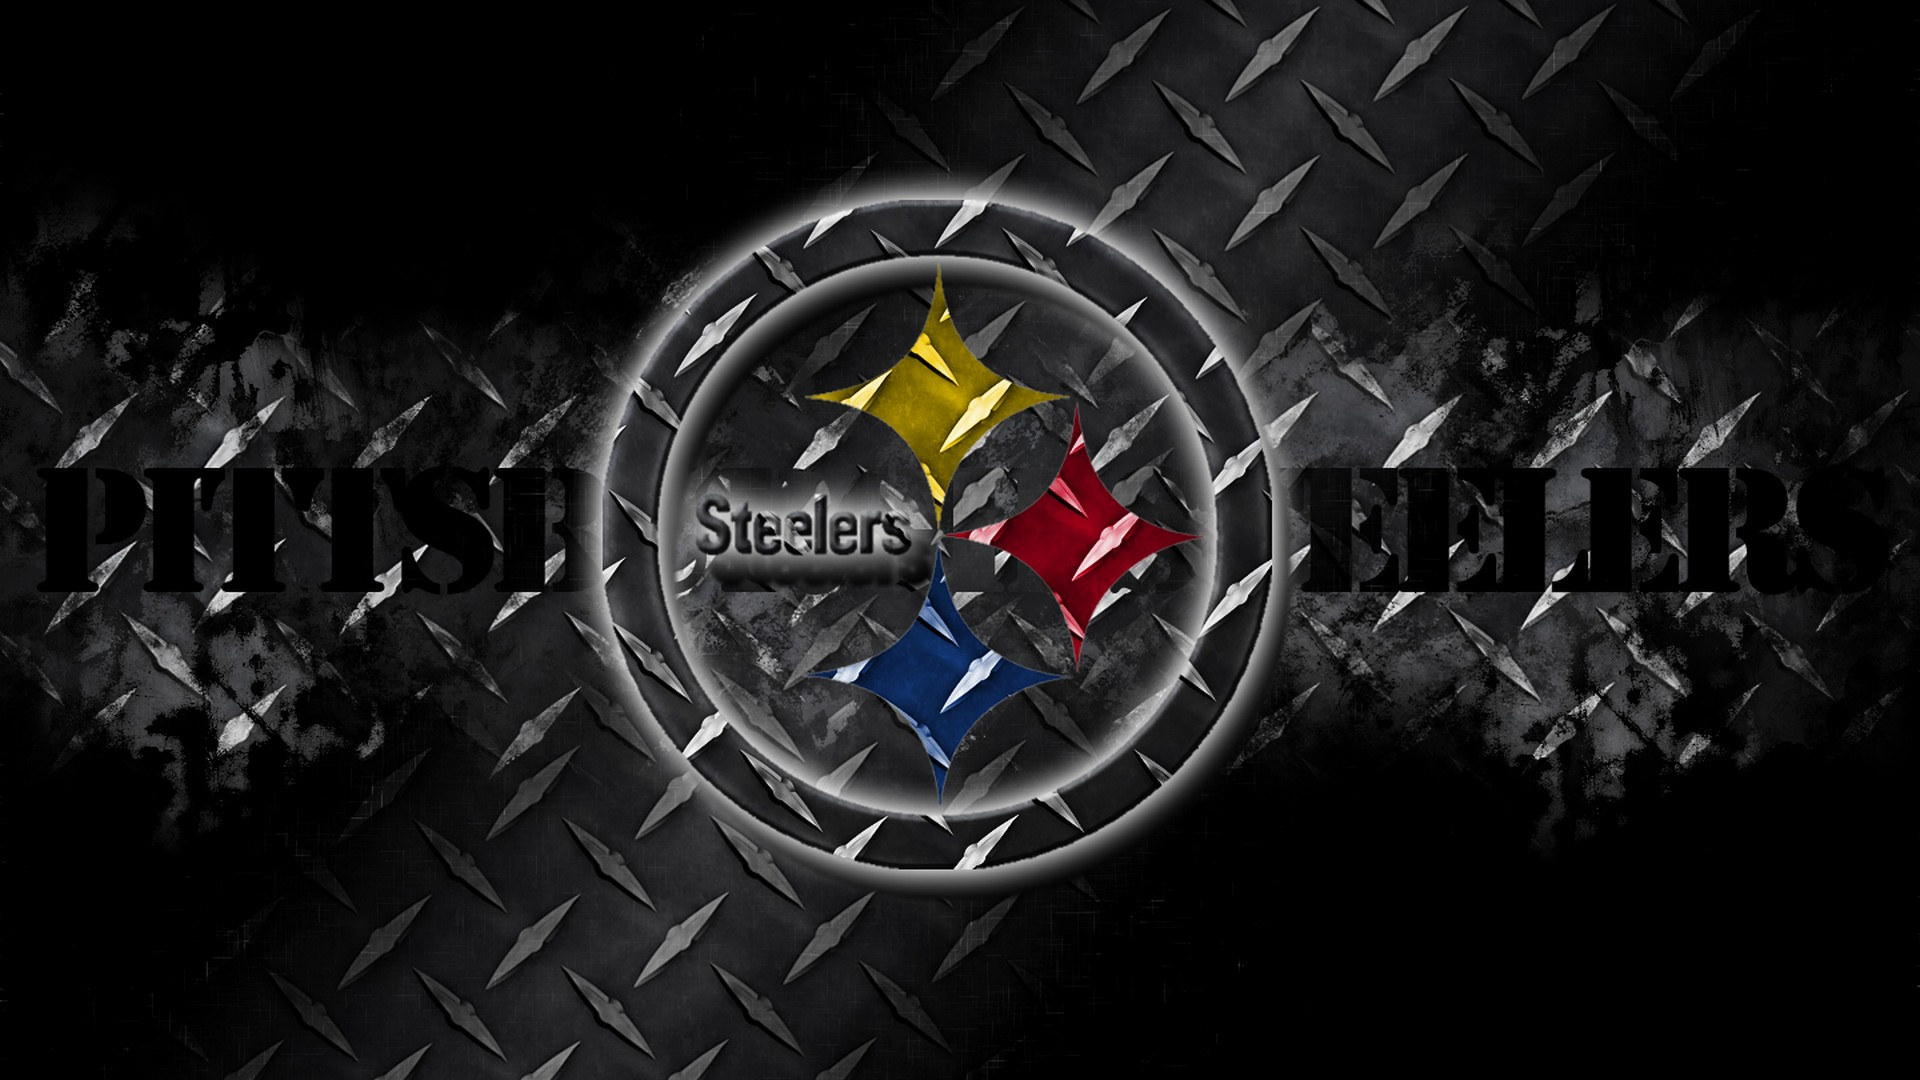 1920x1080 - Steelers Desktop 21